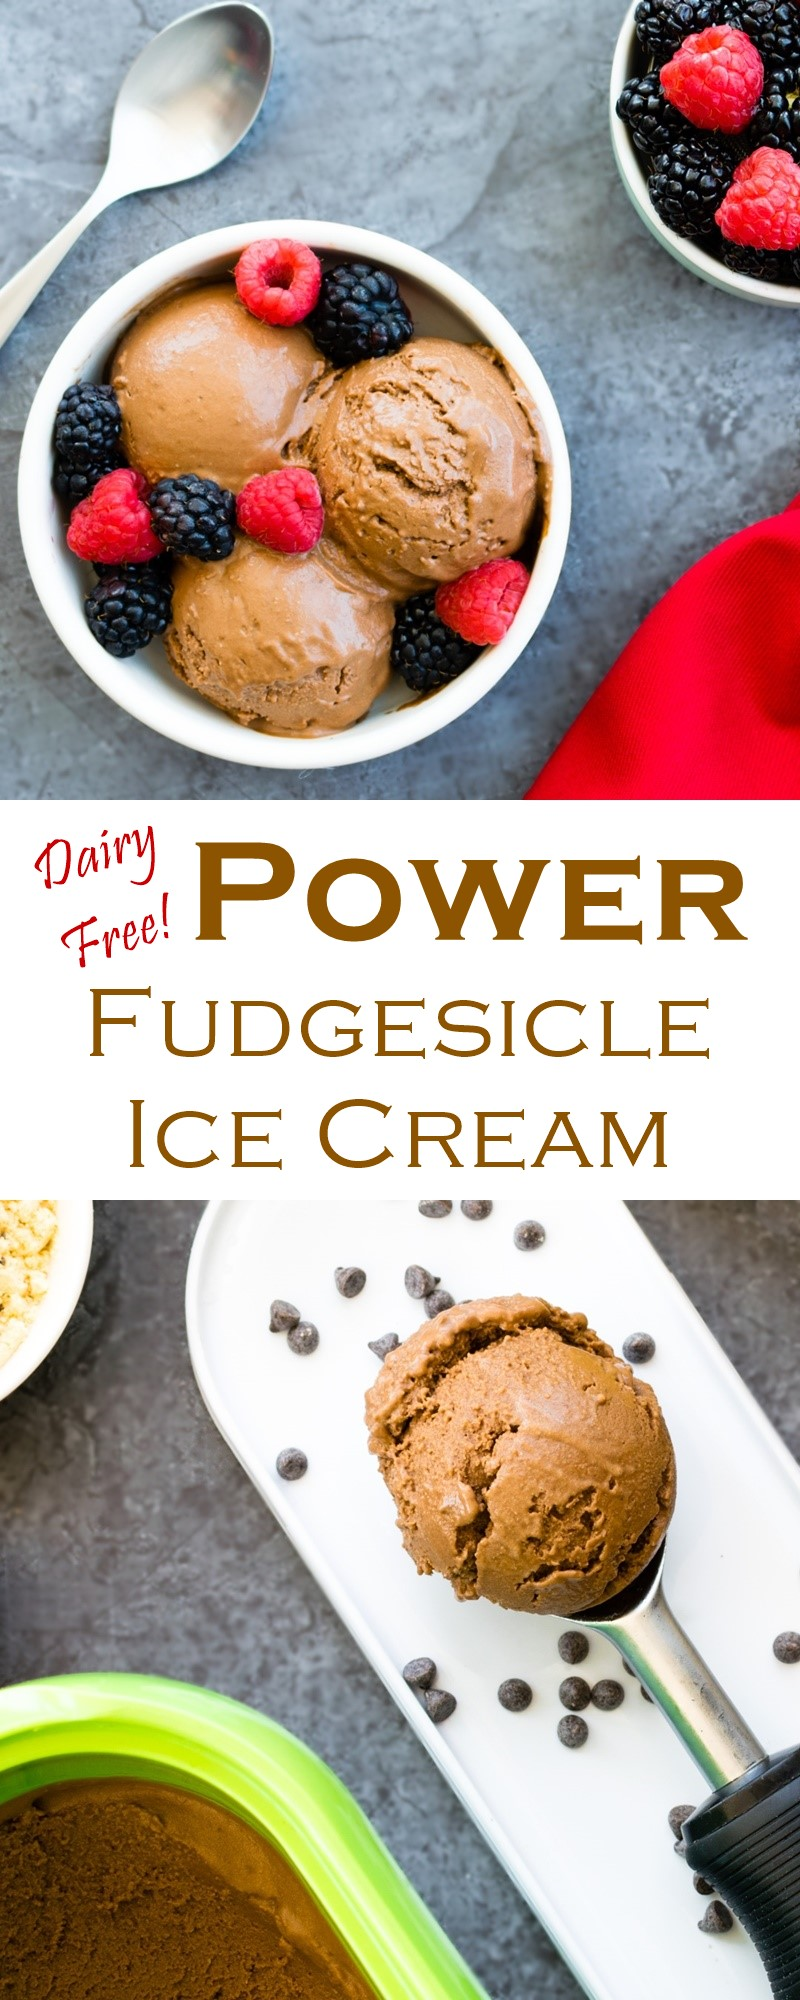 Chocolate Fudgesicle Power Ice Cream Recipe - a nutritious dairy-free, gluten-free, allergy-friendly and vegan treat